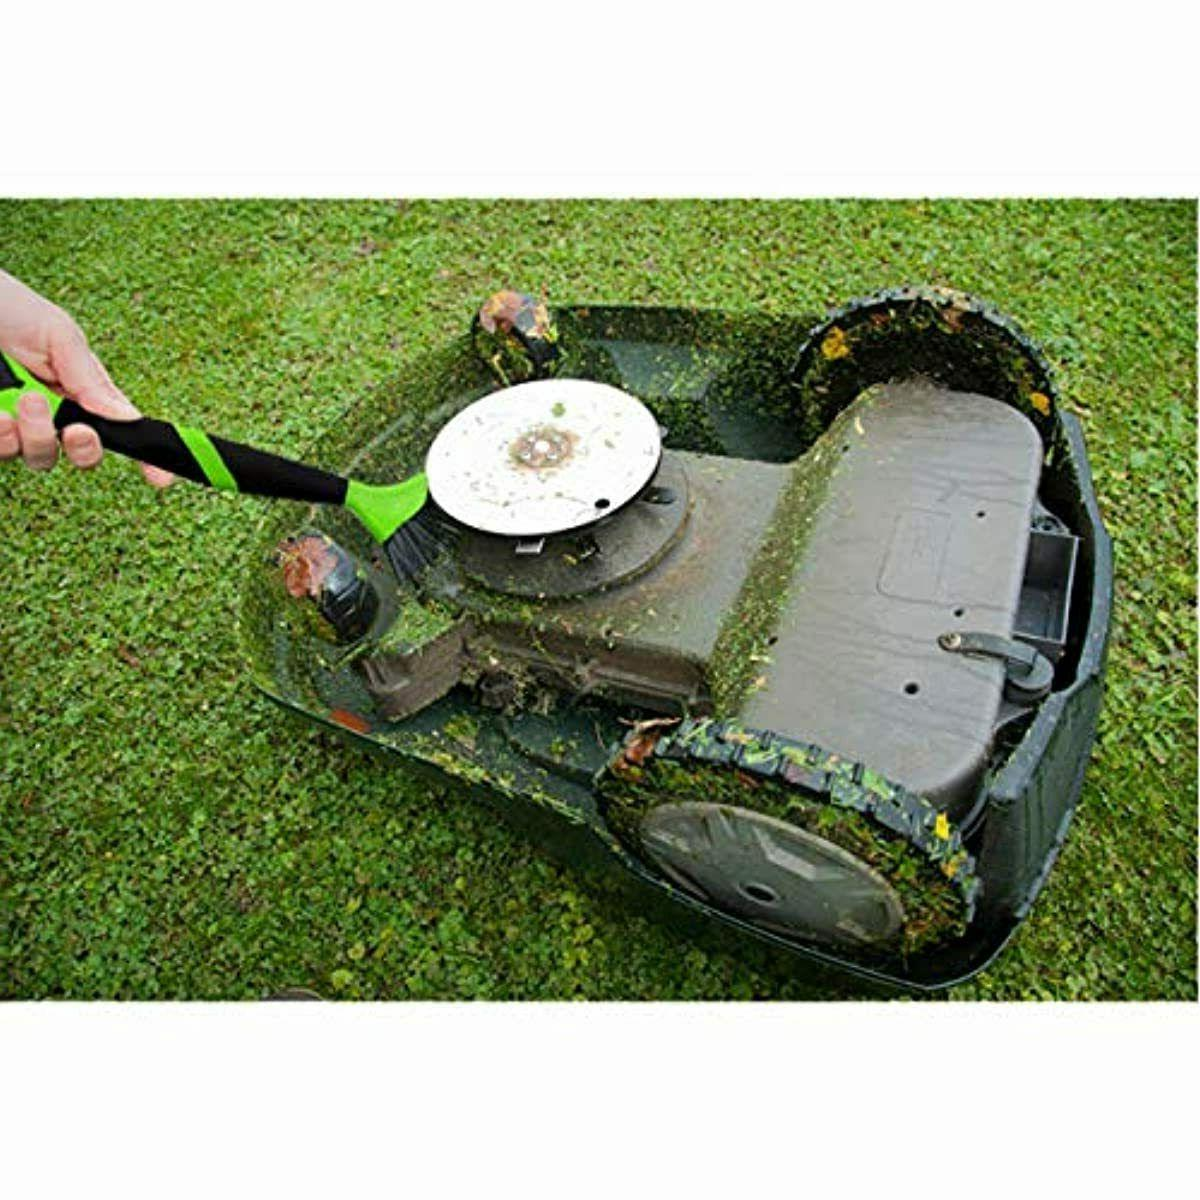 Walensee Lawn Lawn Mower Cleaner Mo